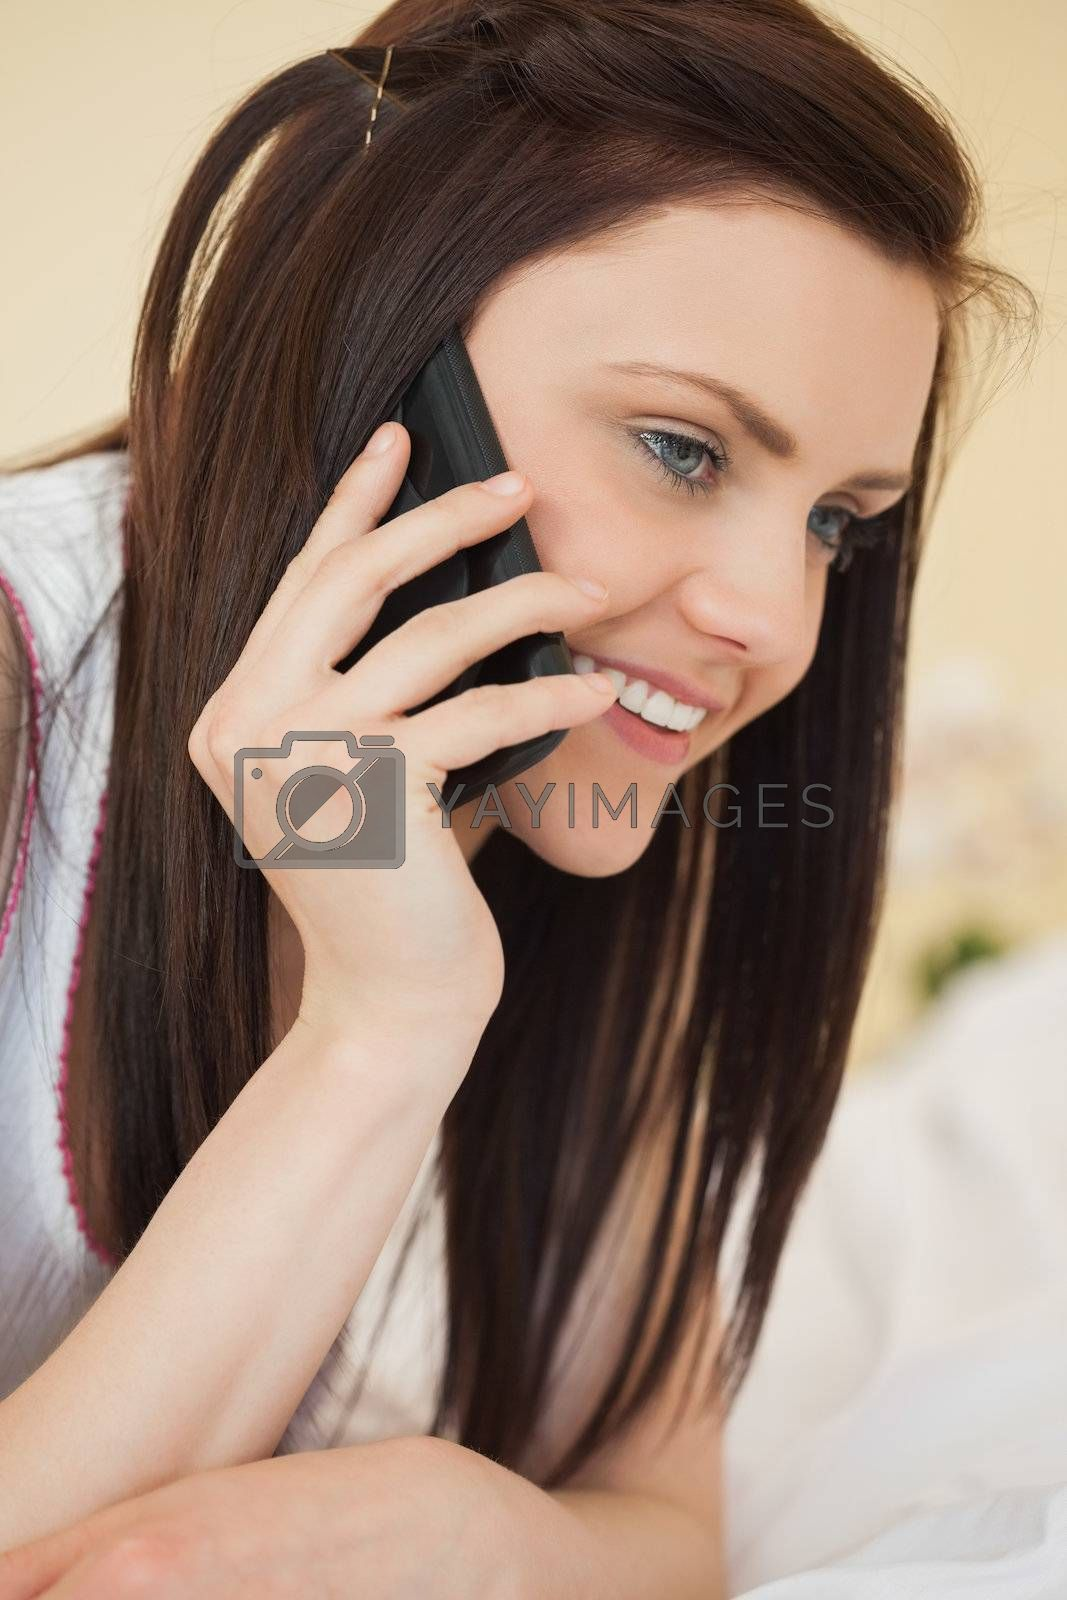 Smiling girl calling someone with a mobile phone lying on a bed by Wavebreakmedia